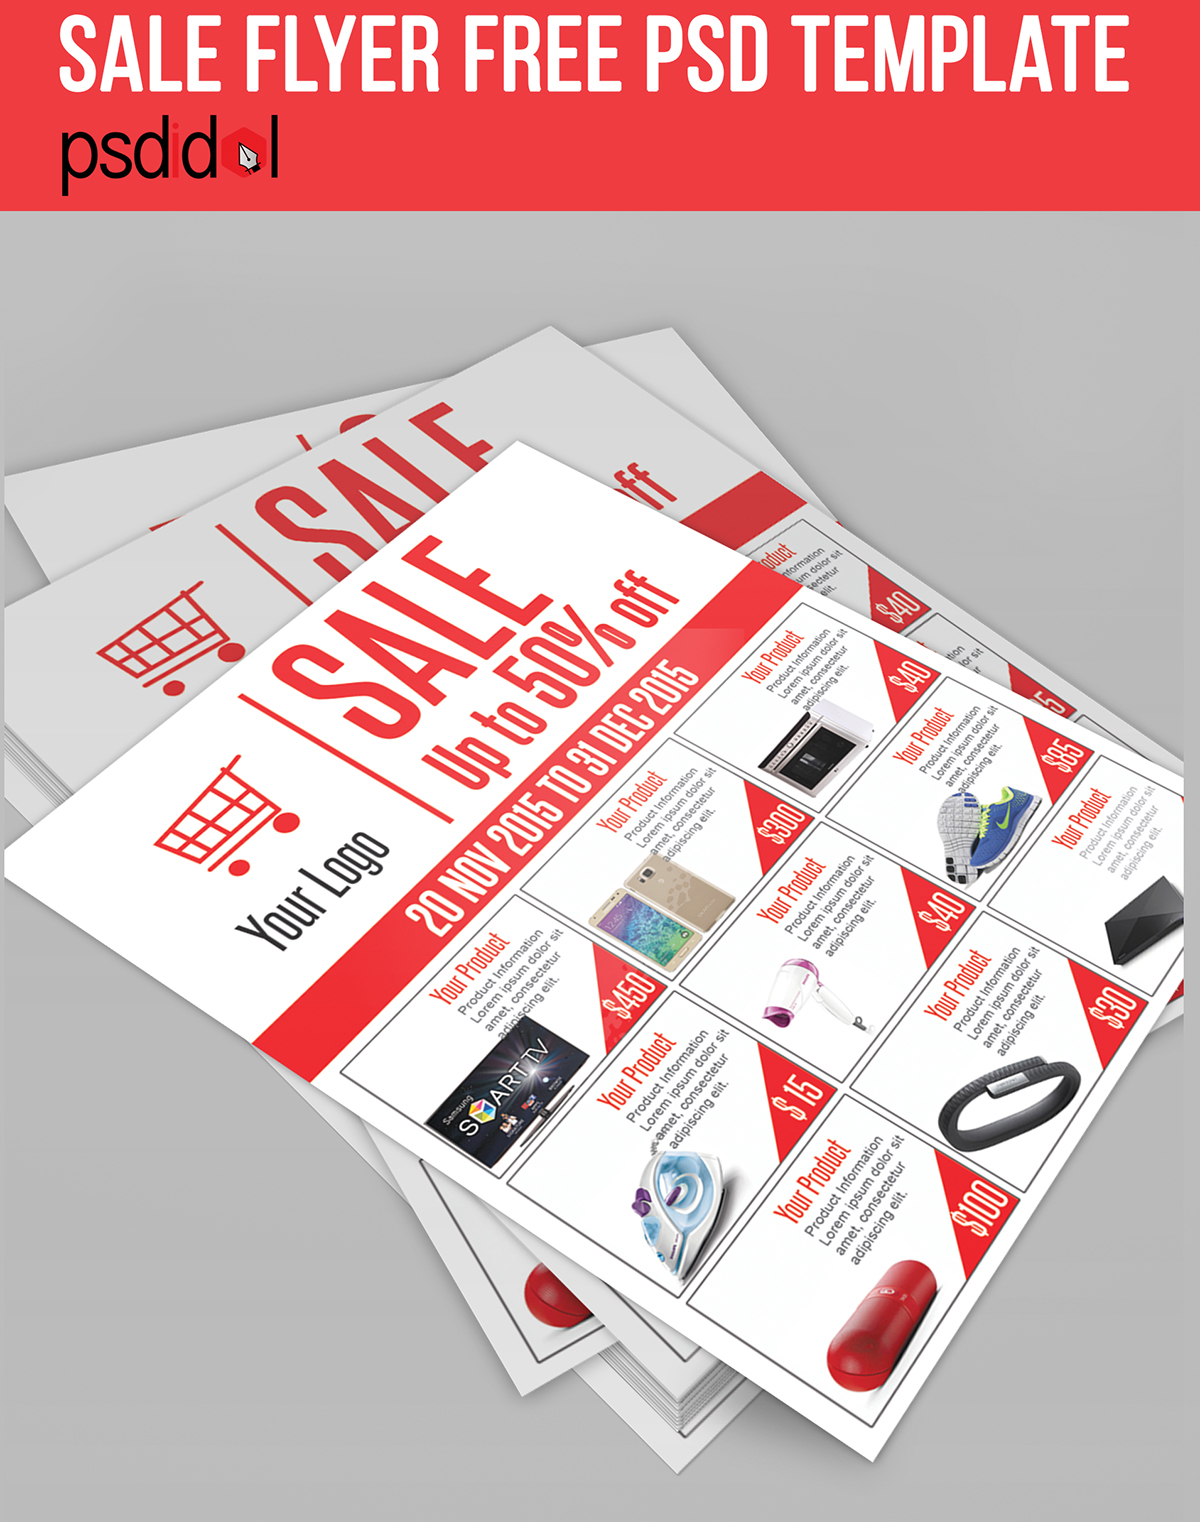 free sale flyer templates